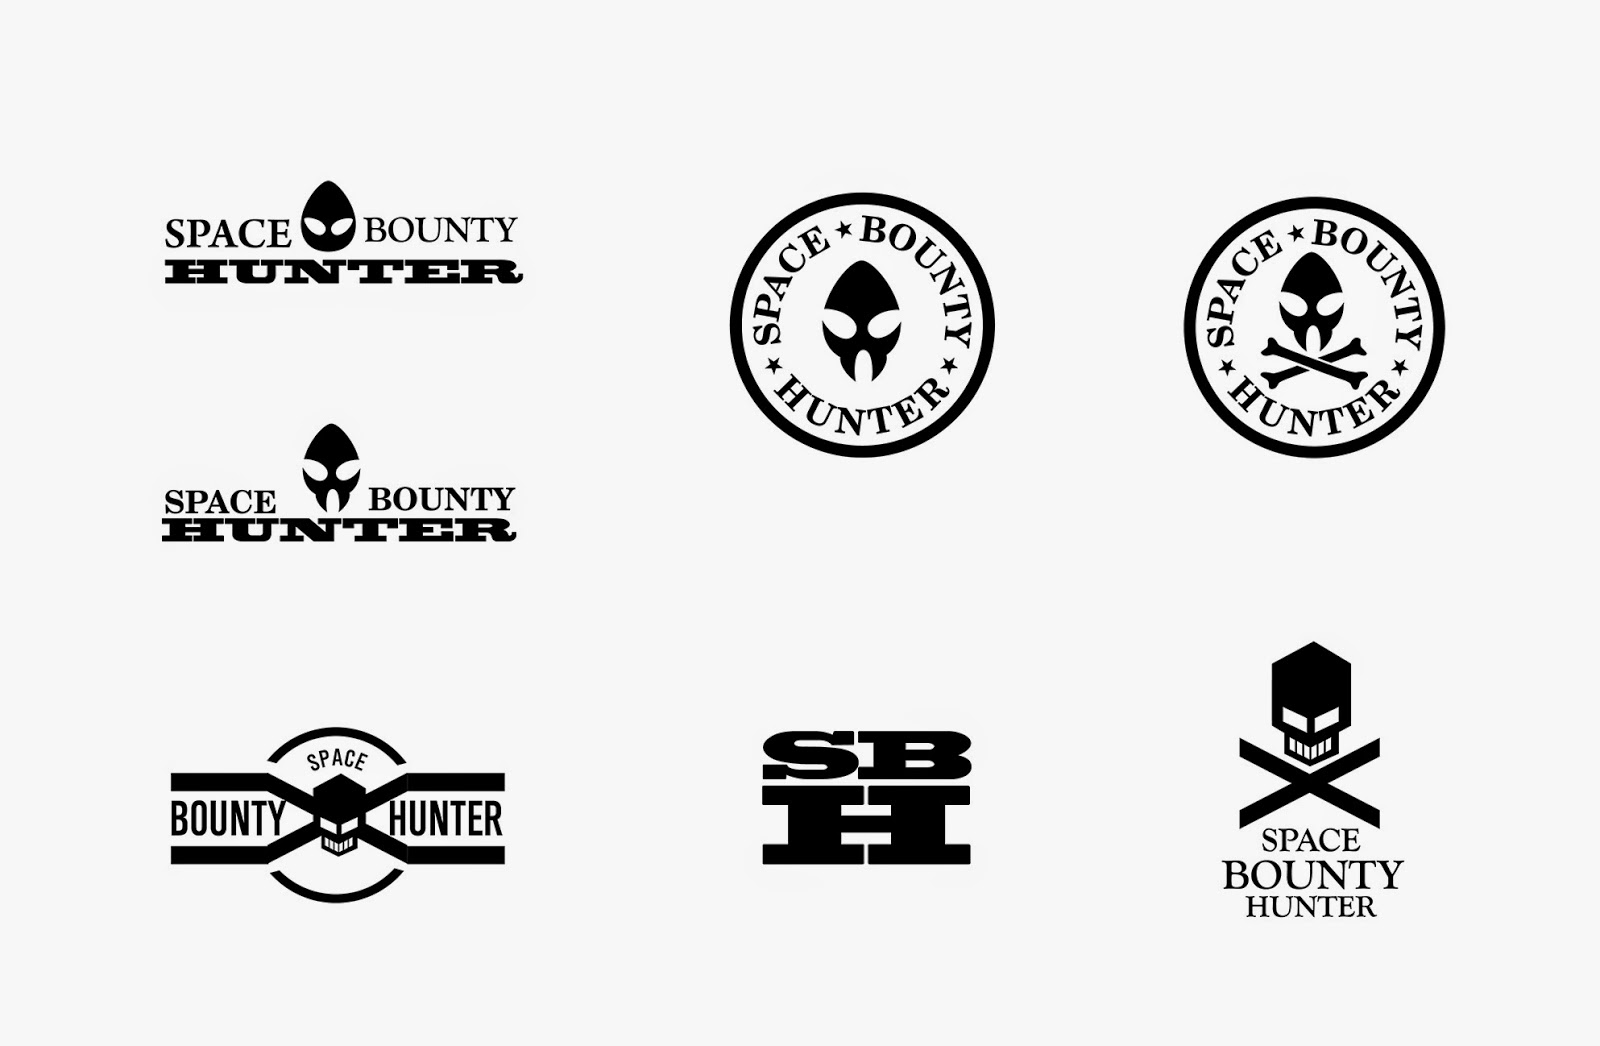 Bounty hunter unity development blog first iterations with logos and possible graphics decals for the spaceship or uniforms buycottarizona Image collections